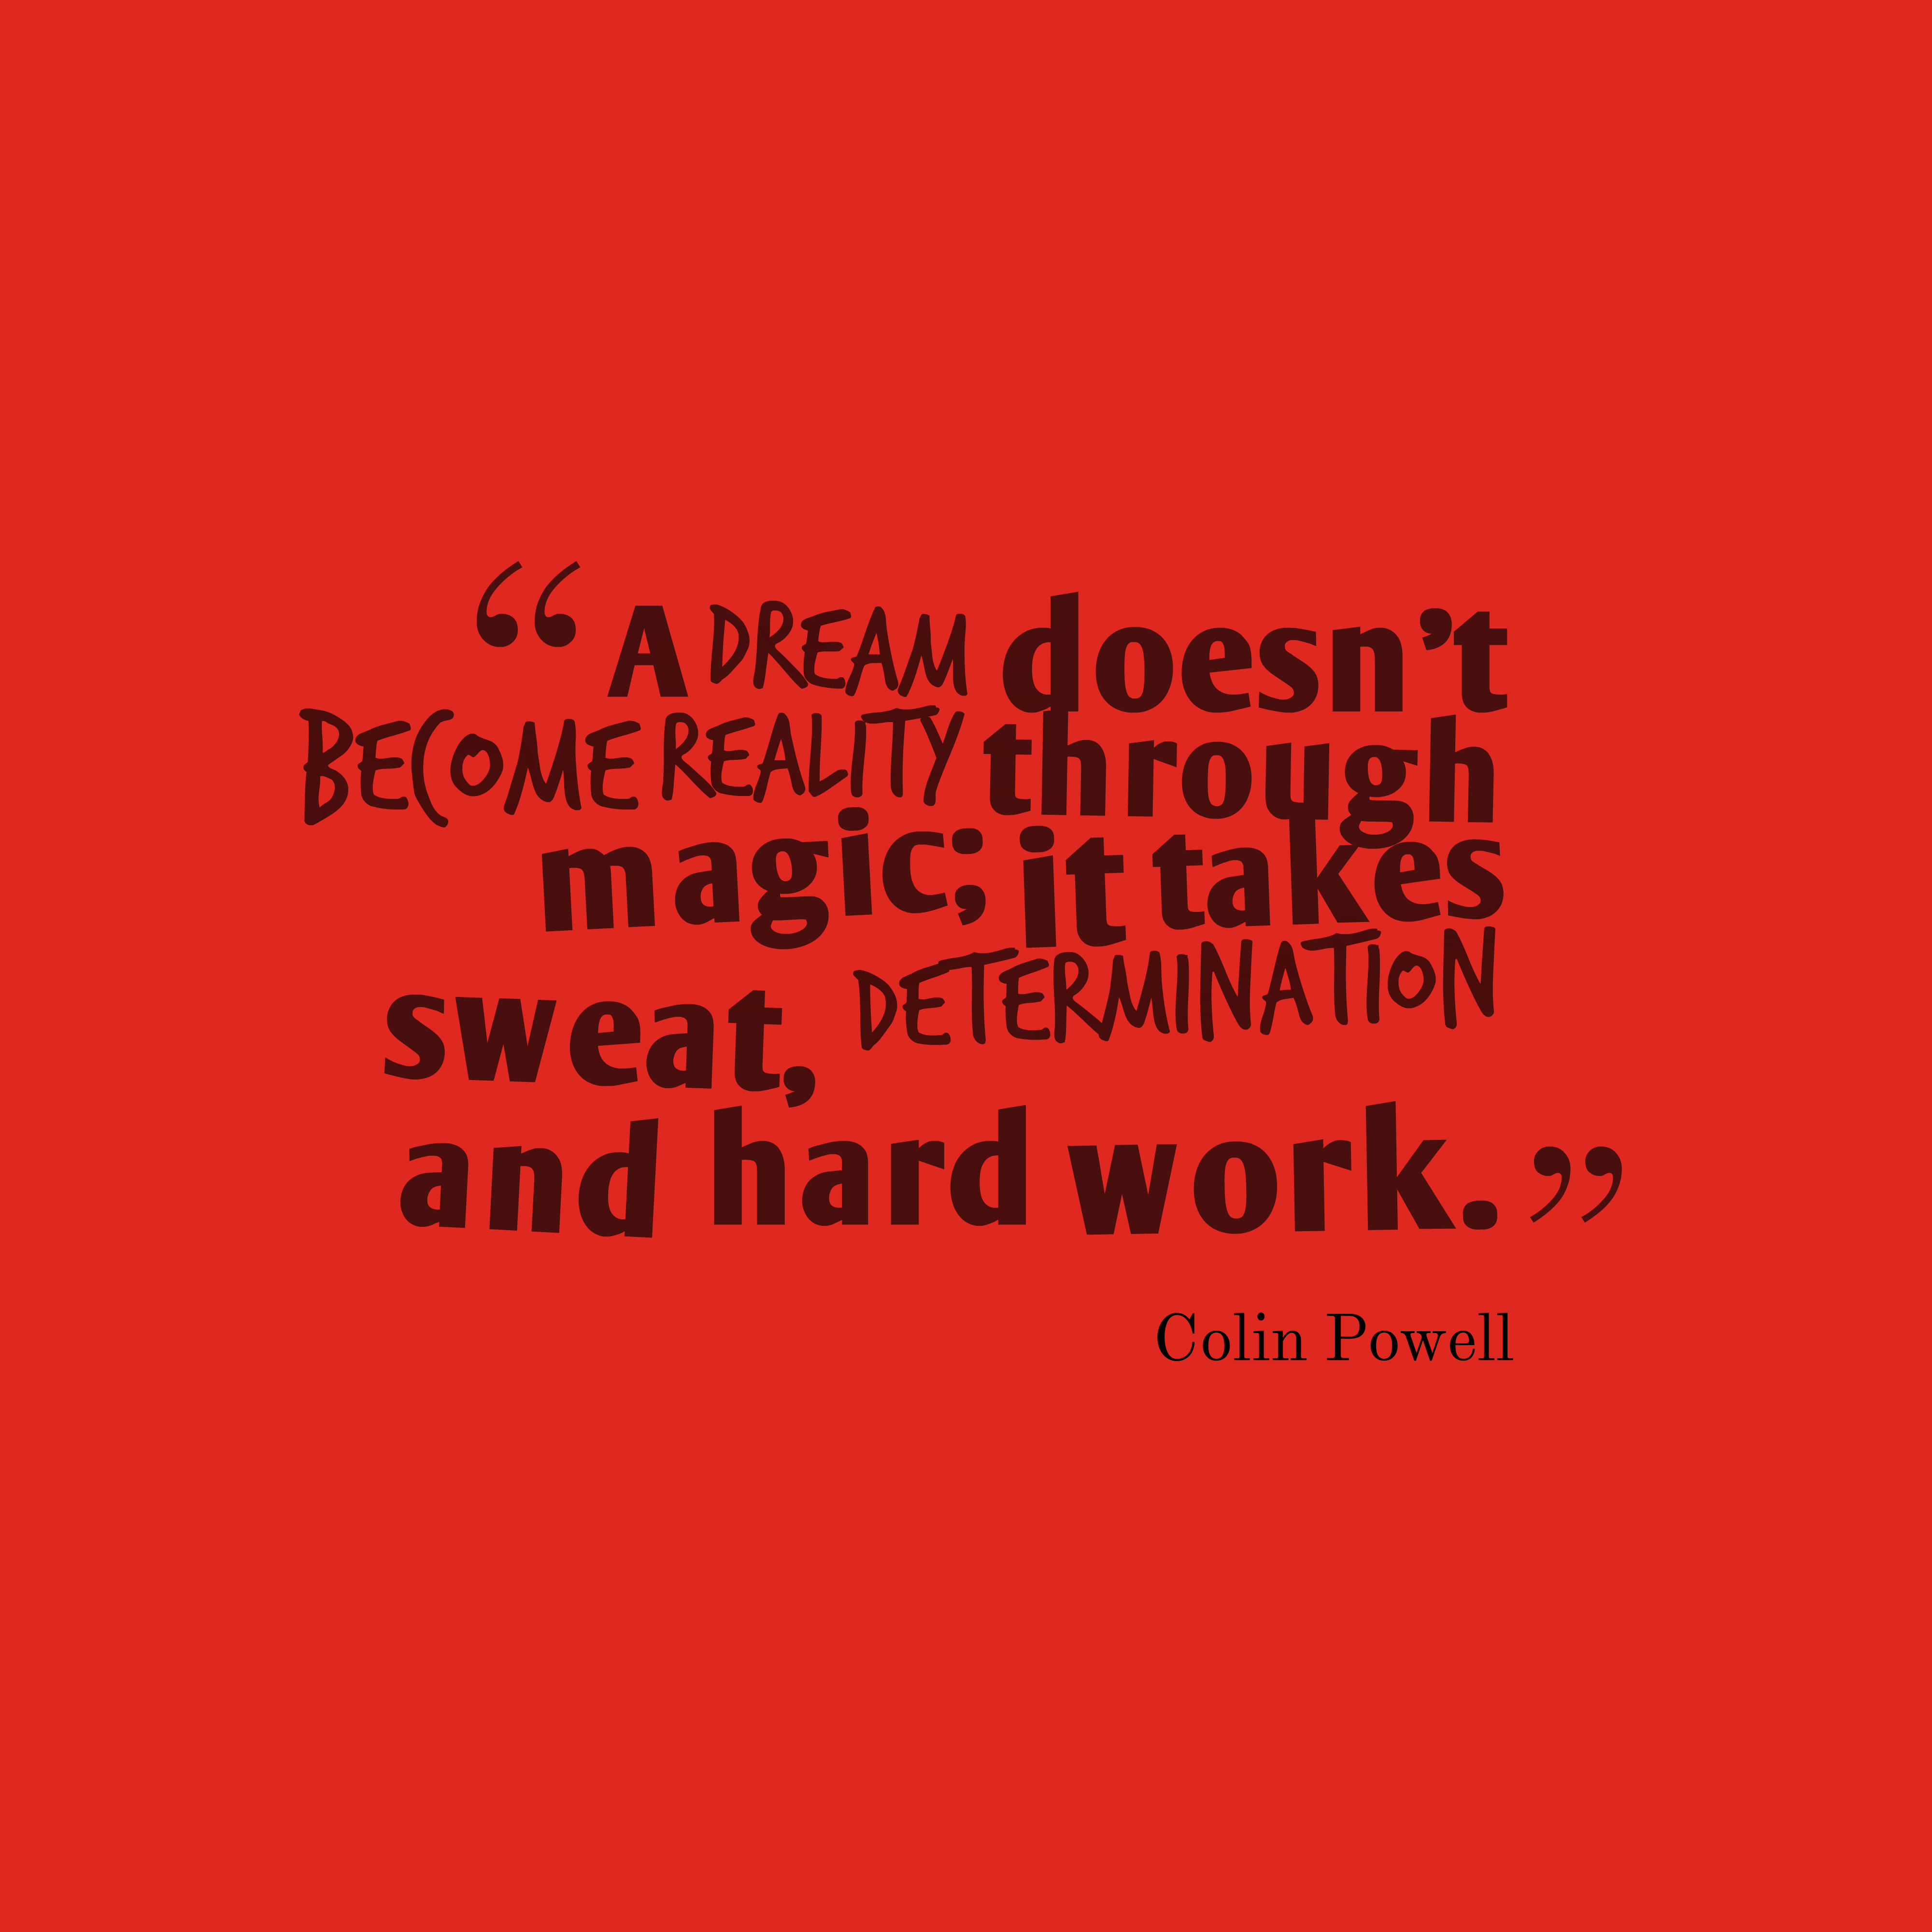 Quotes About Hard Work And Dreams: Picture Colin Powell Quote About Dream.